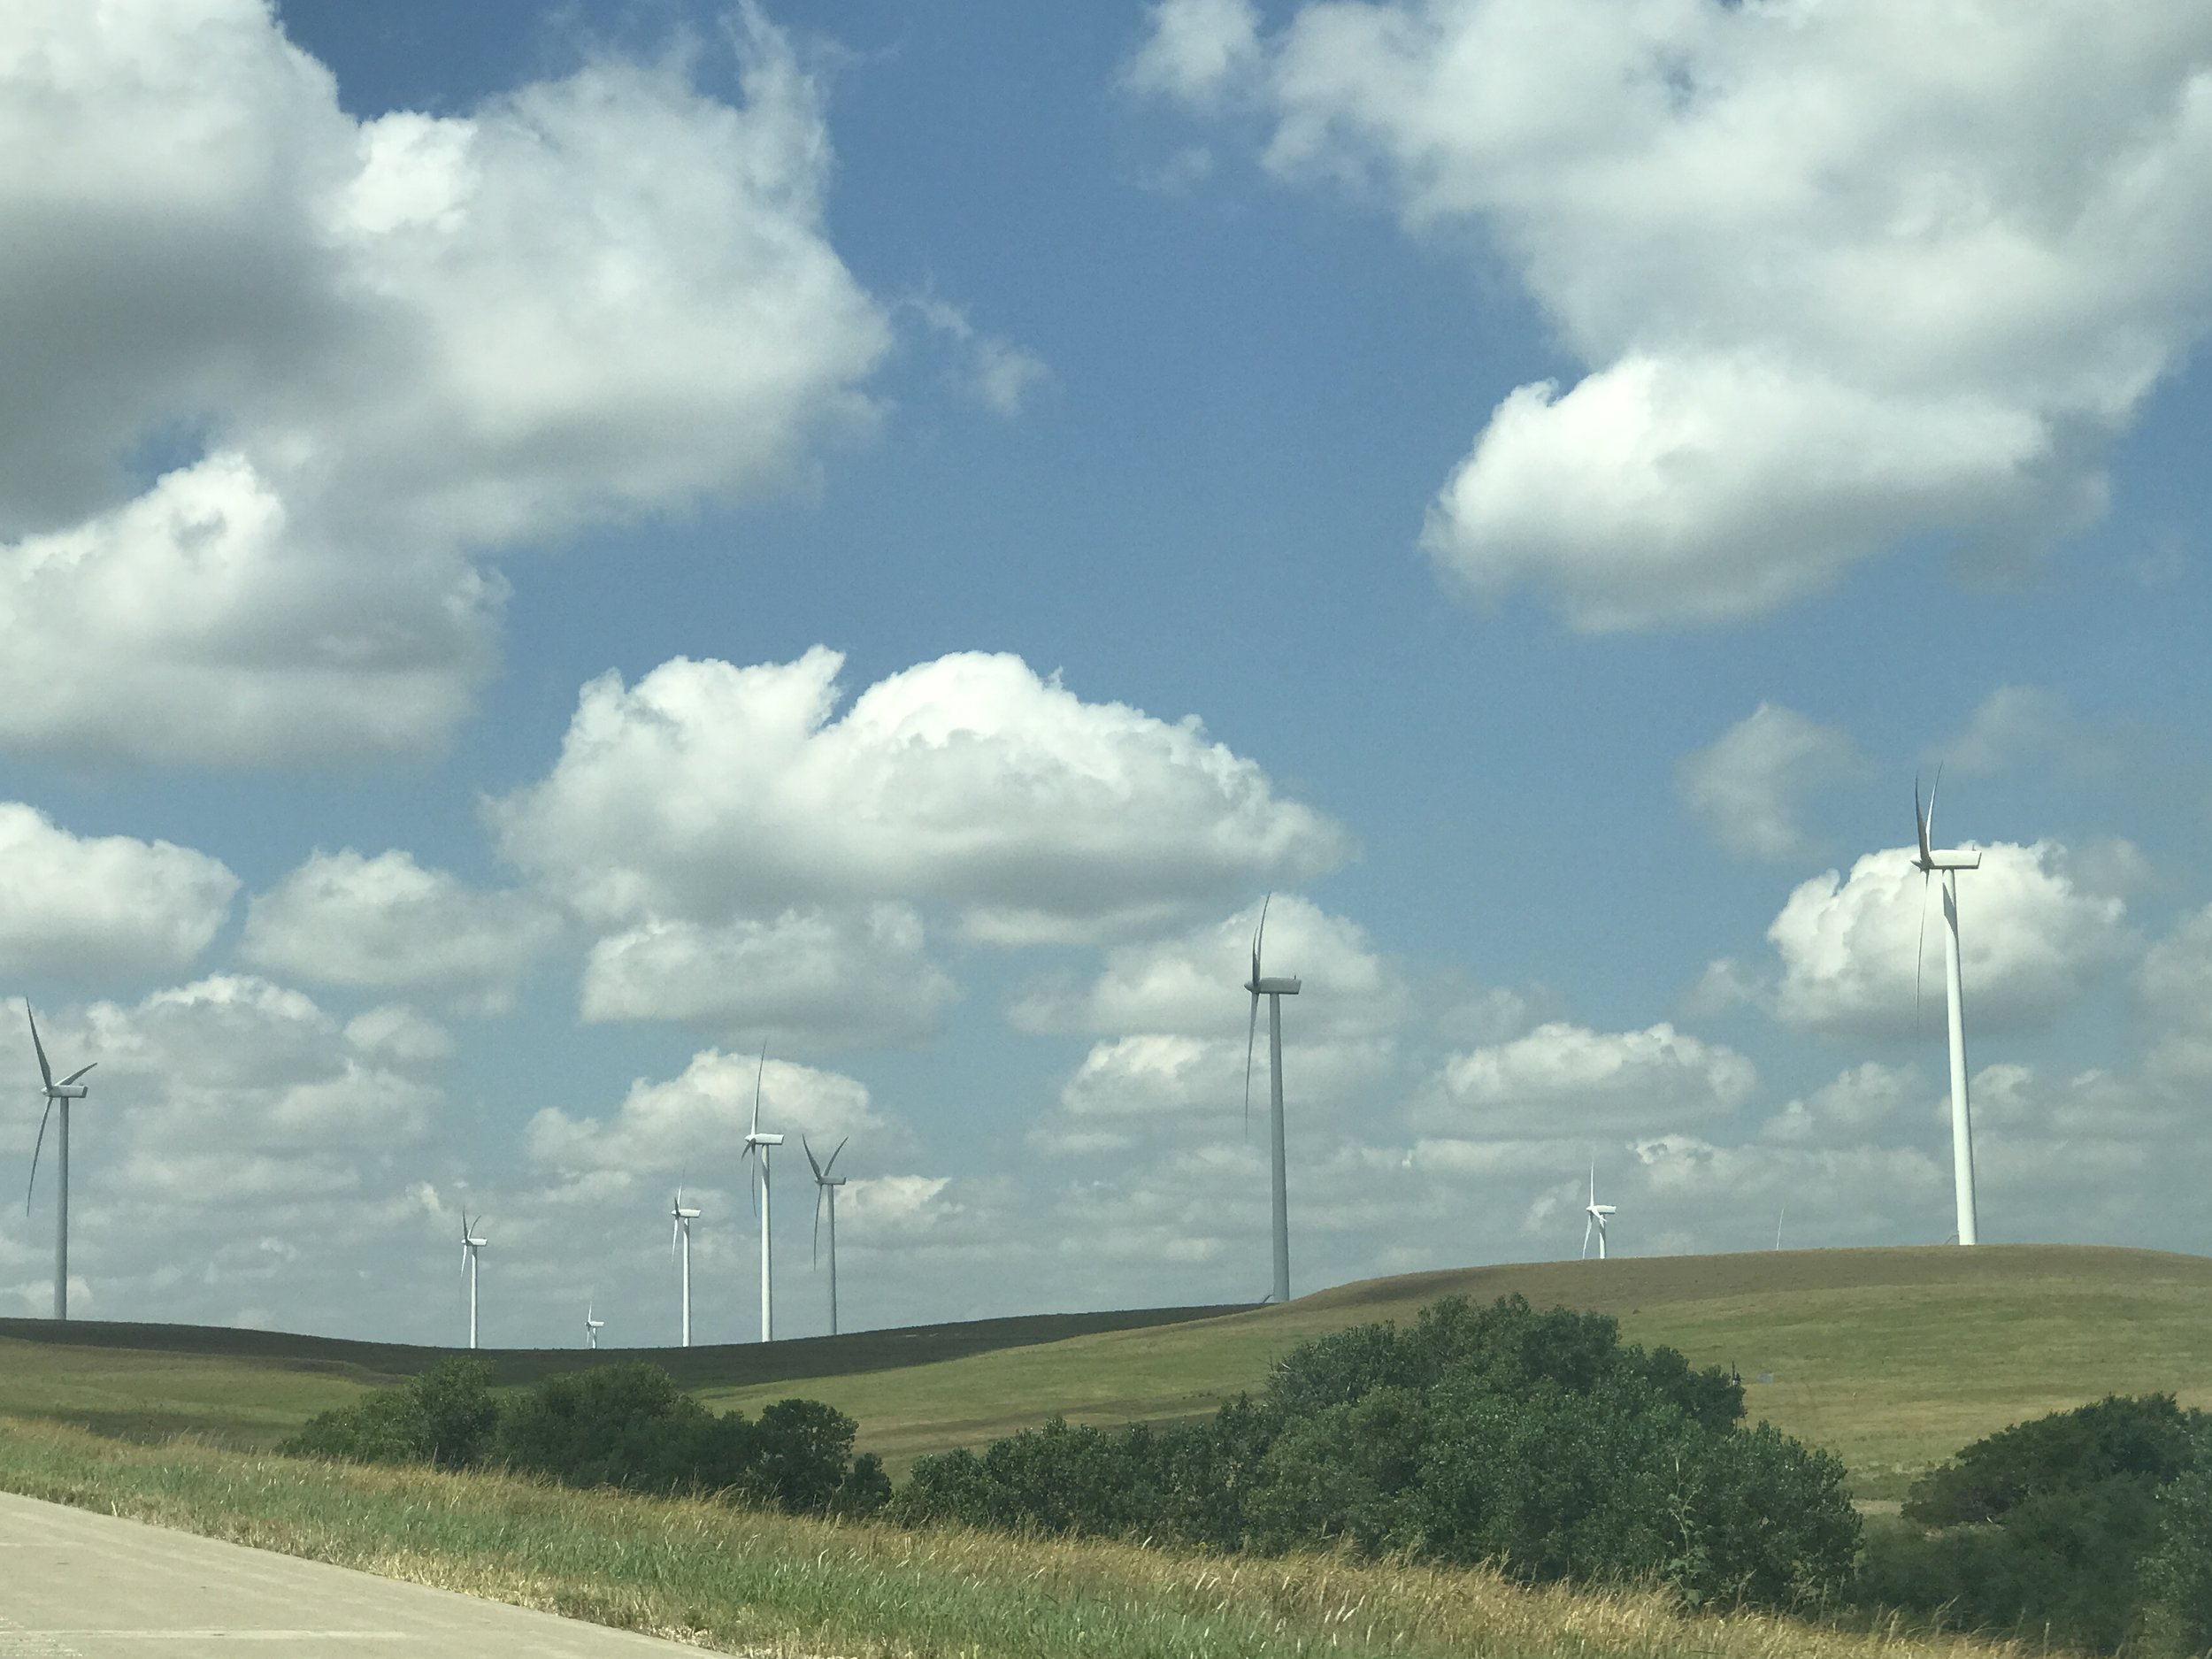 The flatness of Kansas, is ideal for wind farming, throughout Ellsworth County.